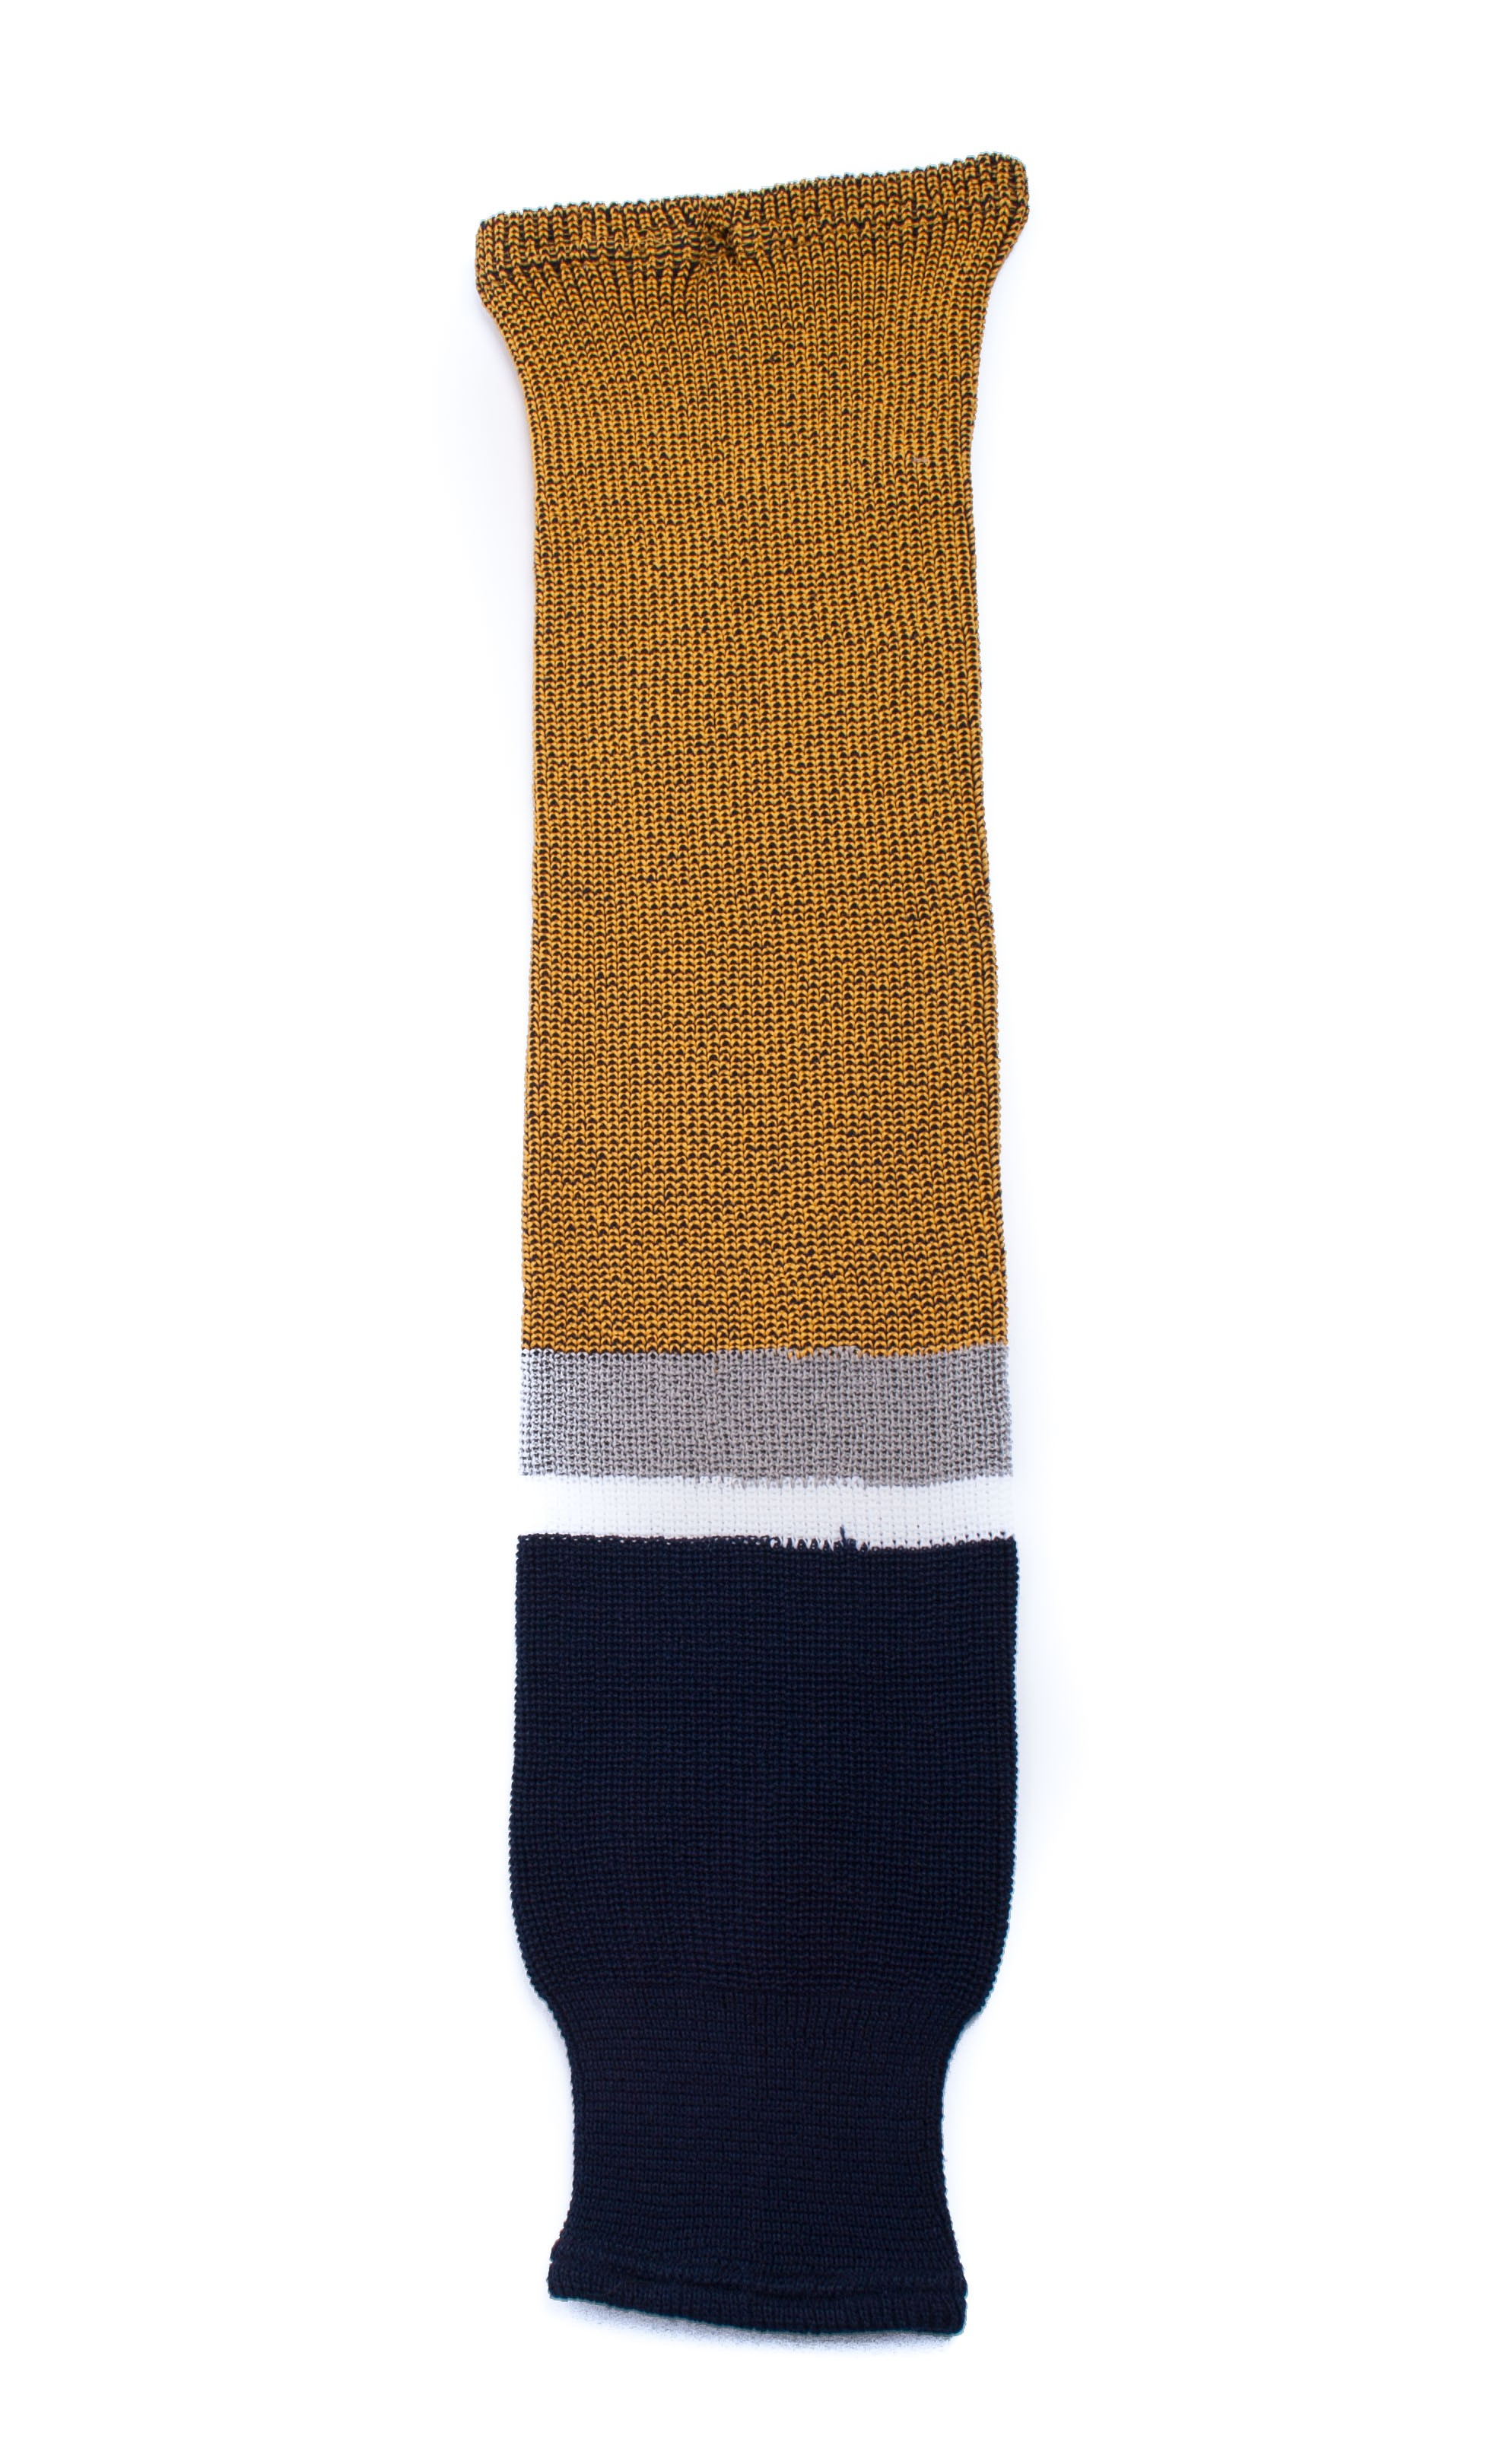 CCM Knit Adult Hockey Socks#012